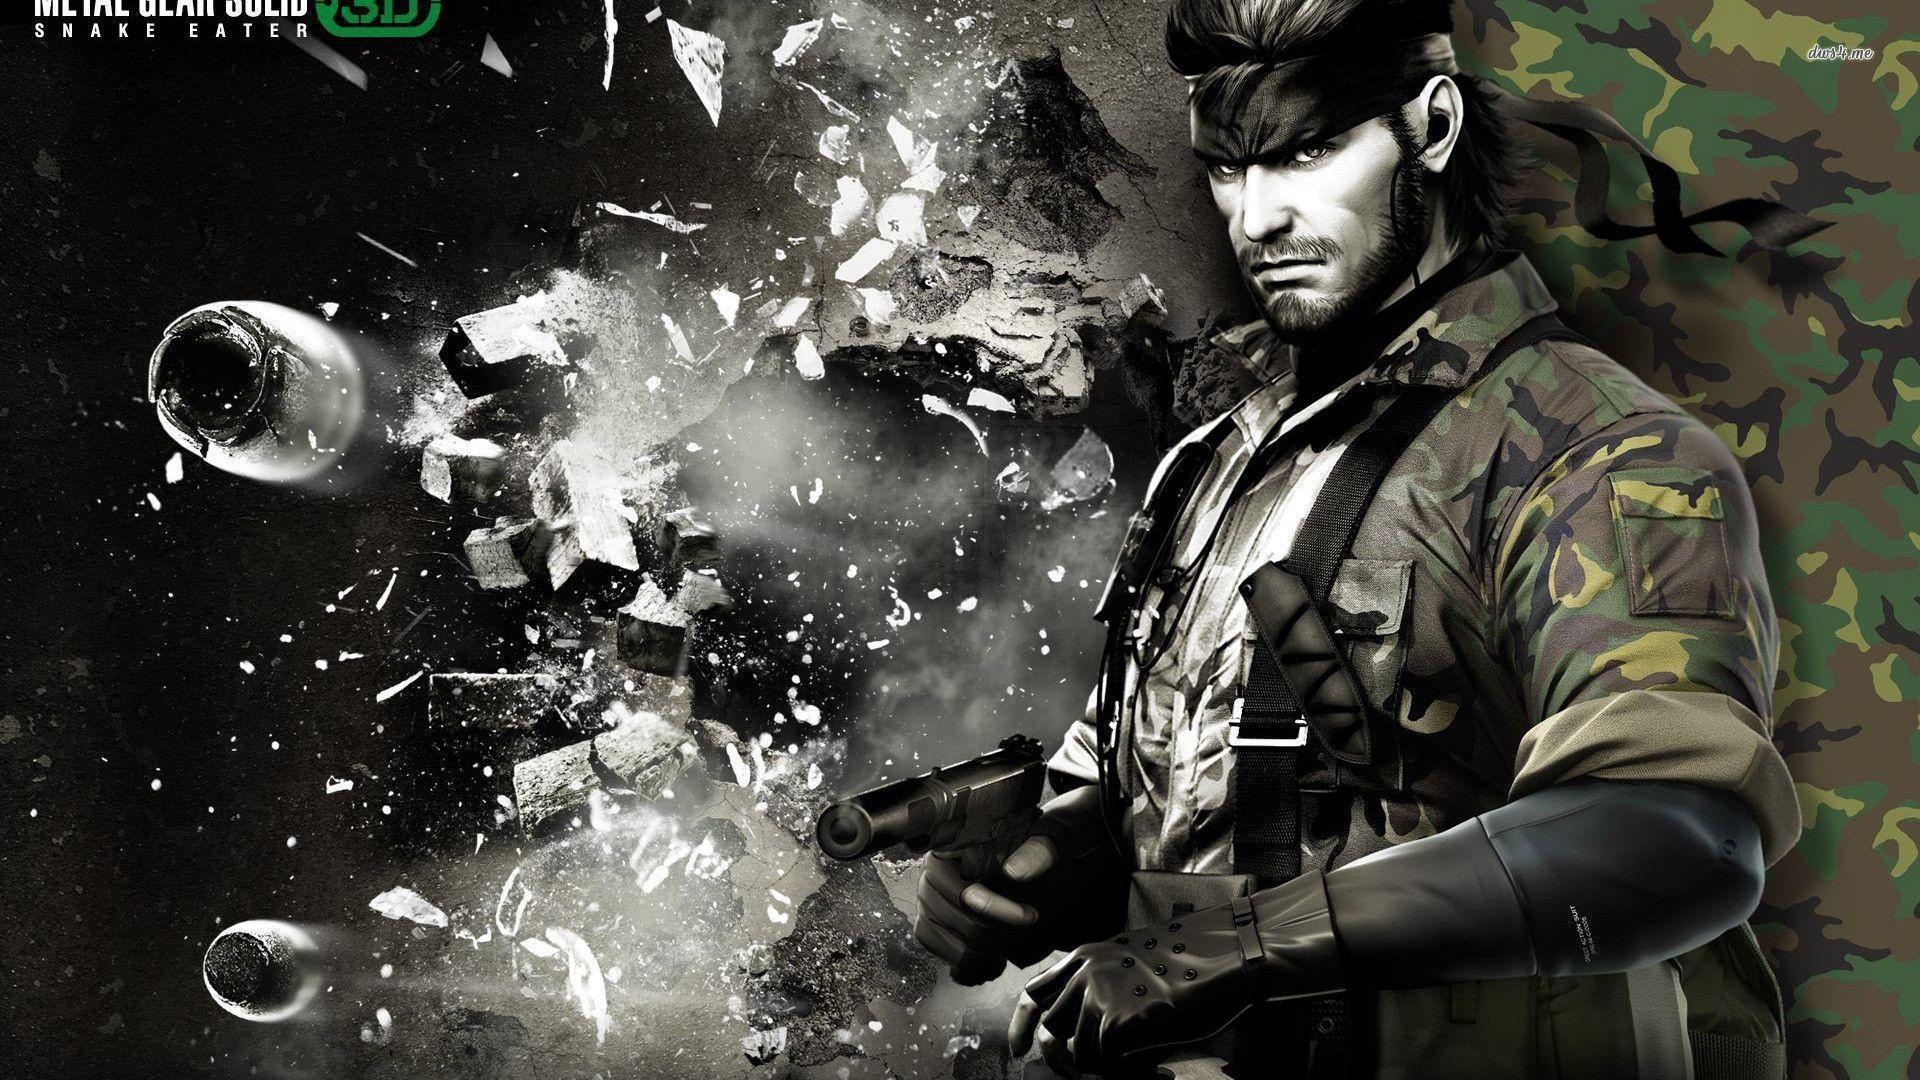 Metal Gear Solid Wallpapers Hd Wallpaper Cave